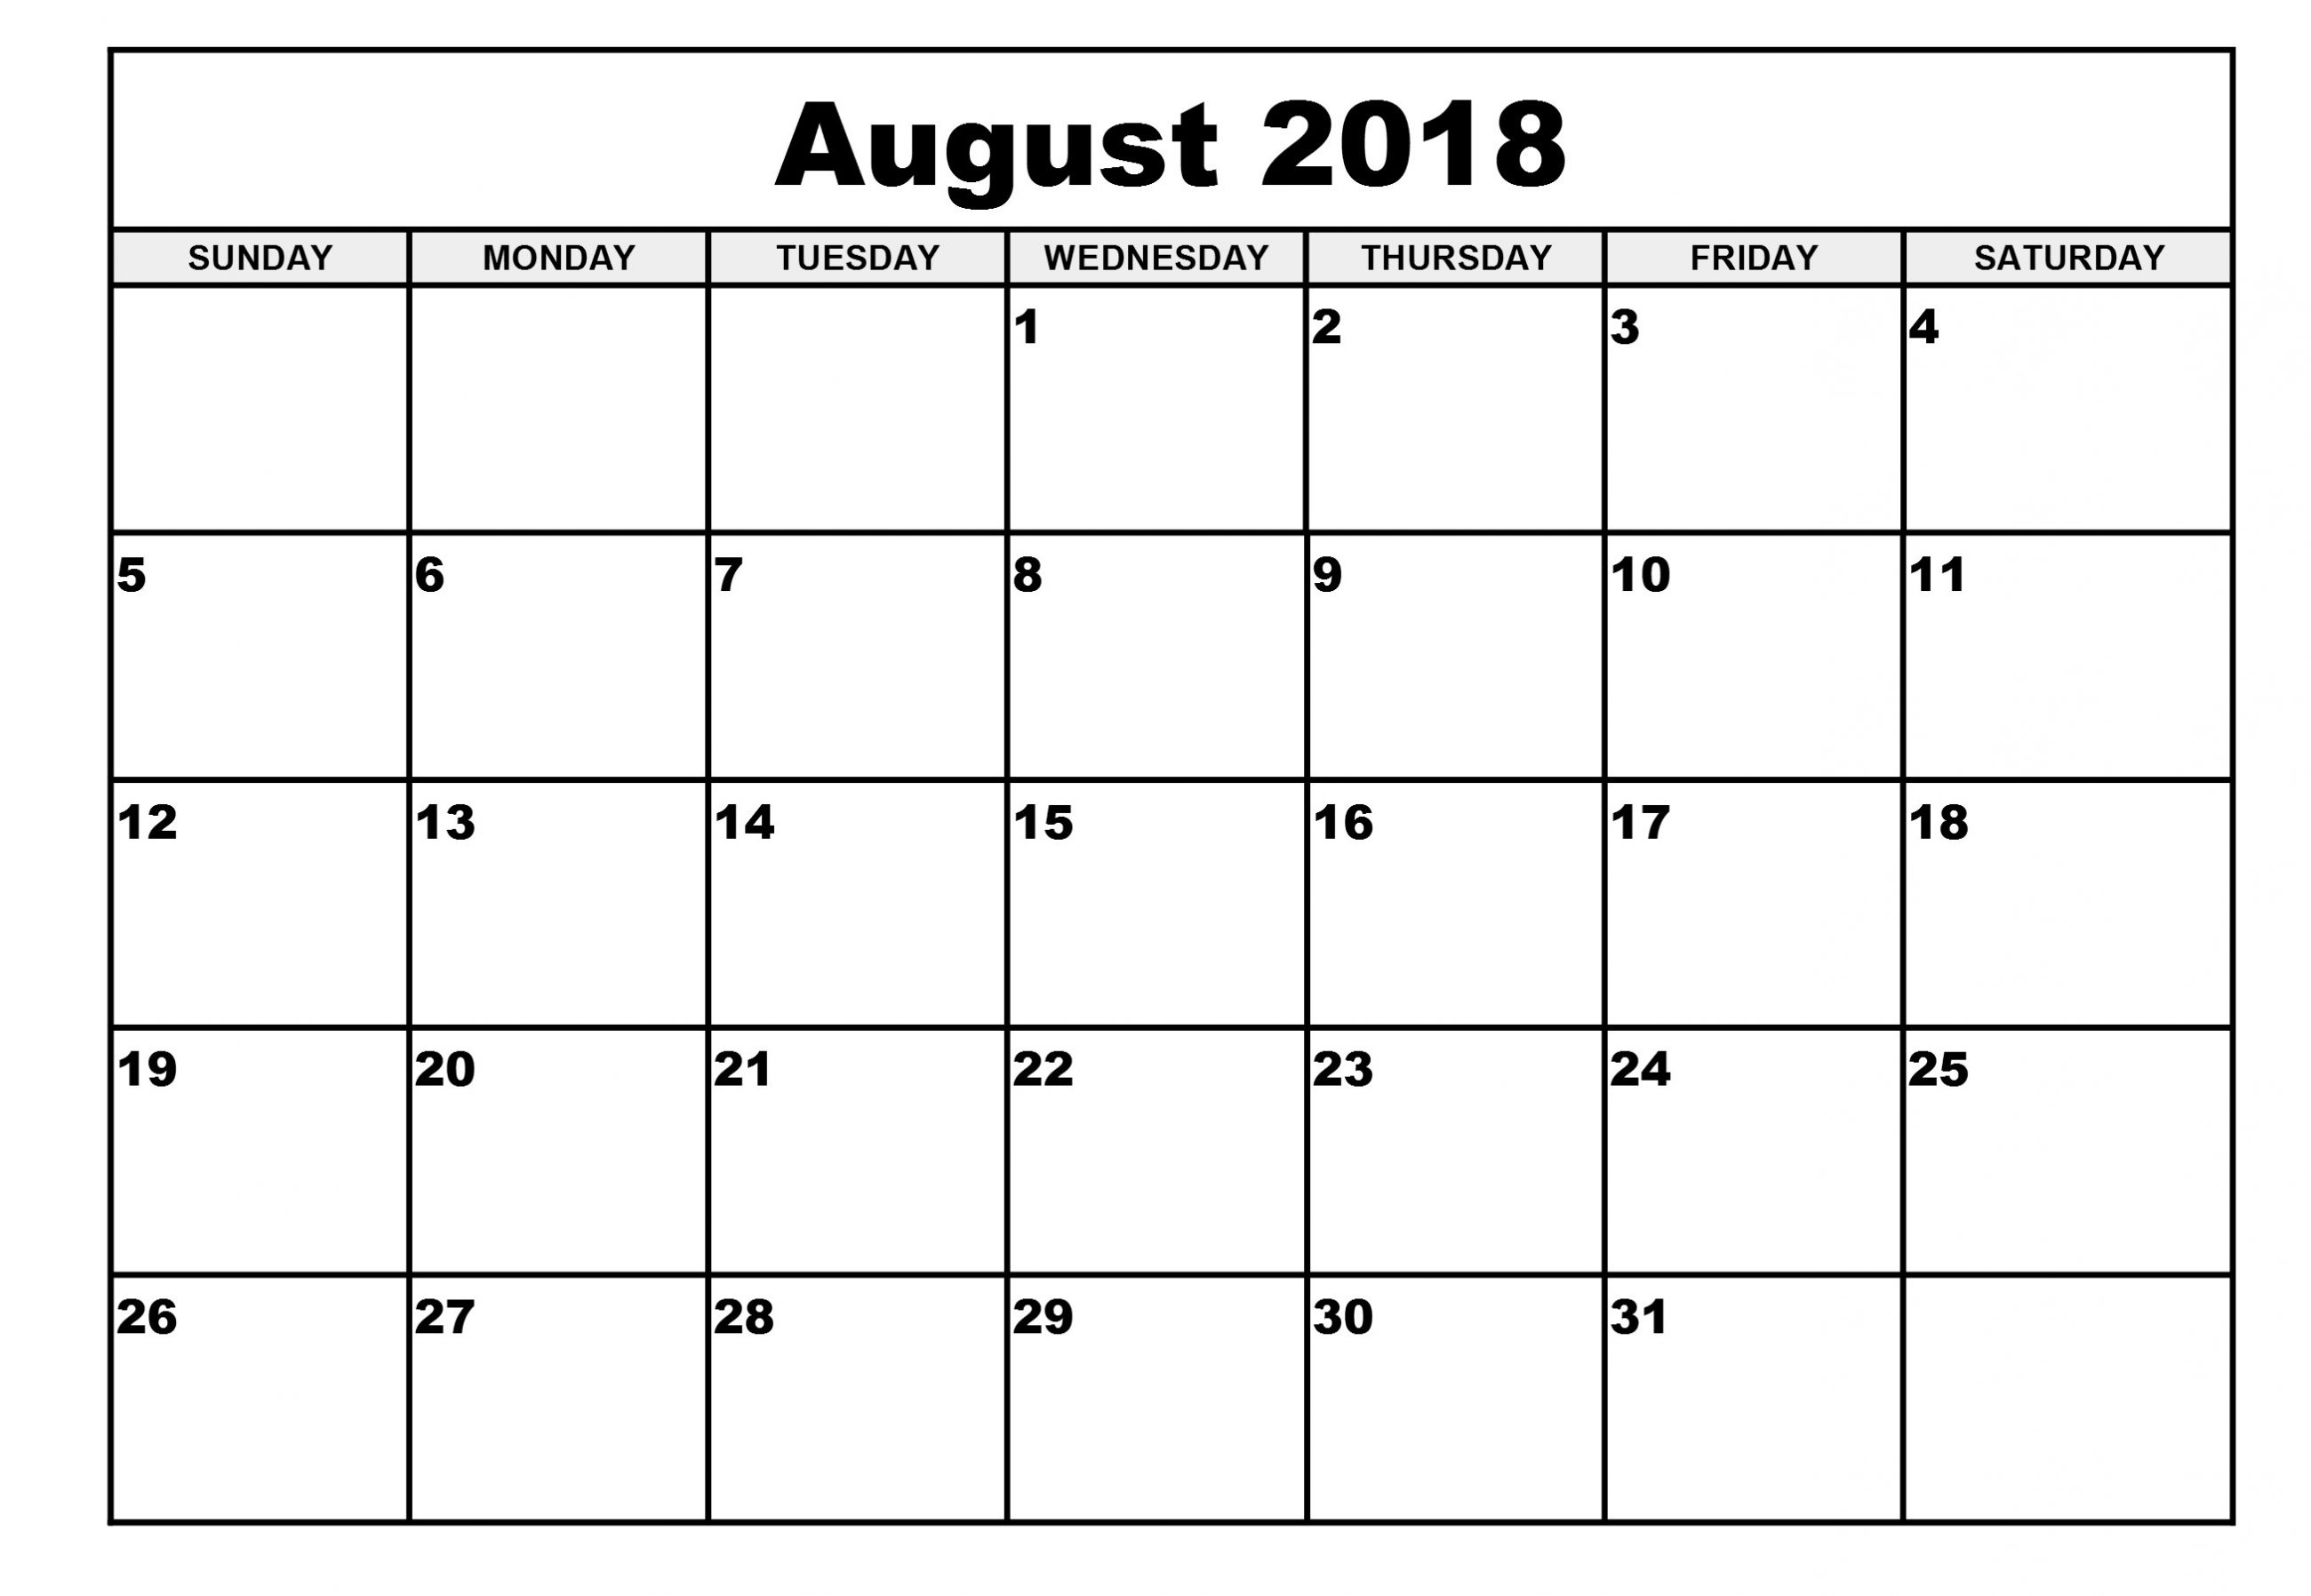 august 2018 calendar monthly calendar template throughout august Printable Monthly Calendar For Aug 2018 erdferdf